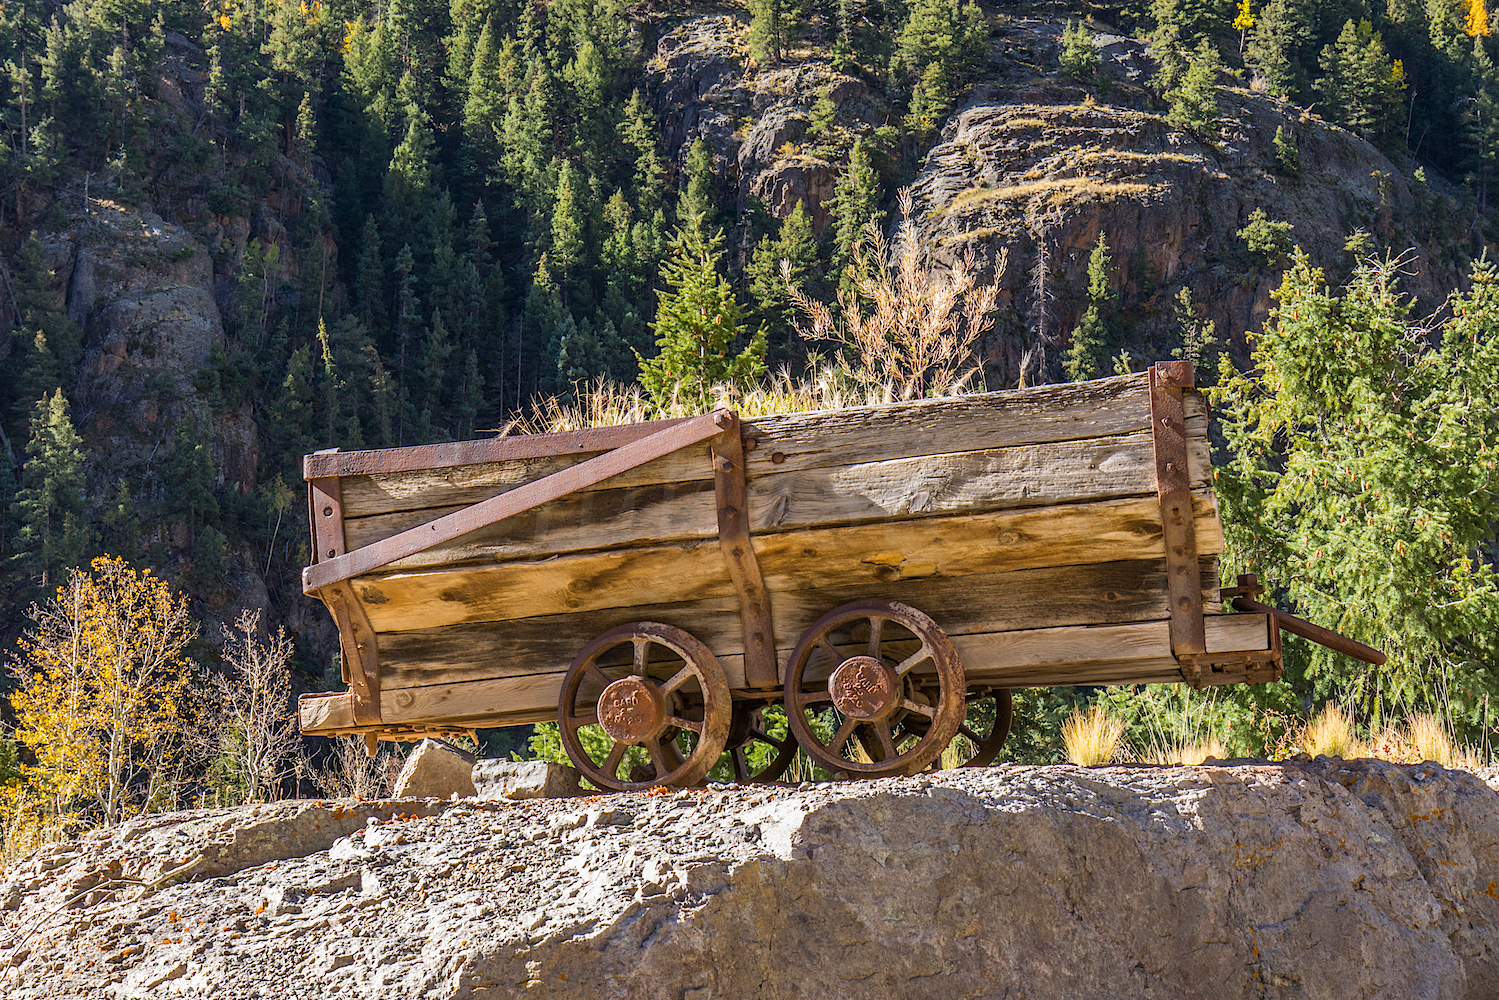 Old Wooden Ore Cart, Image # 5039